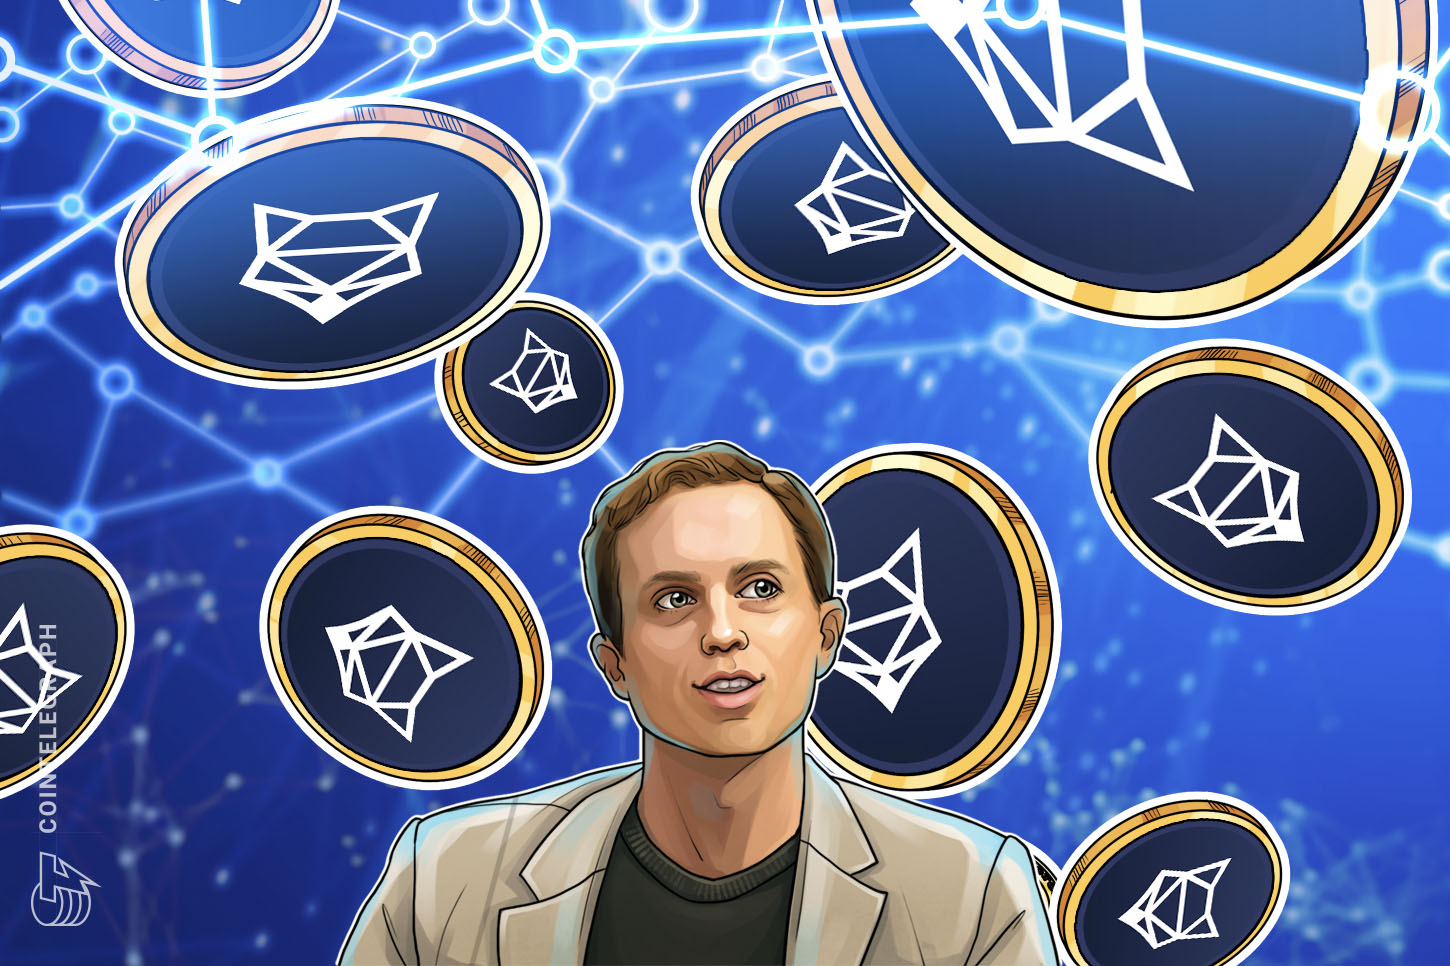 ShapeShift to decentralize entire company, plans for largest airdrop in history